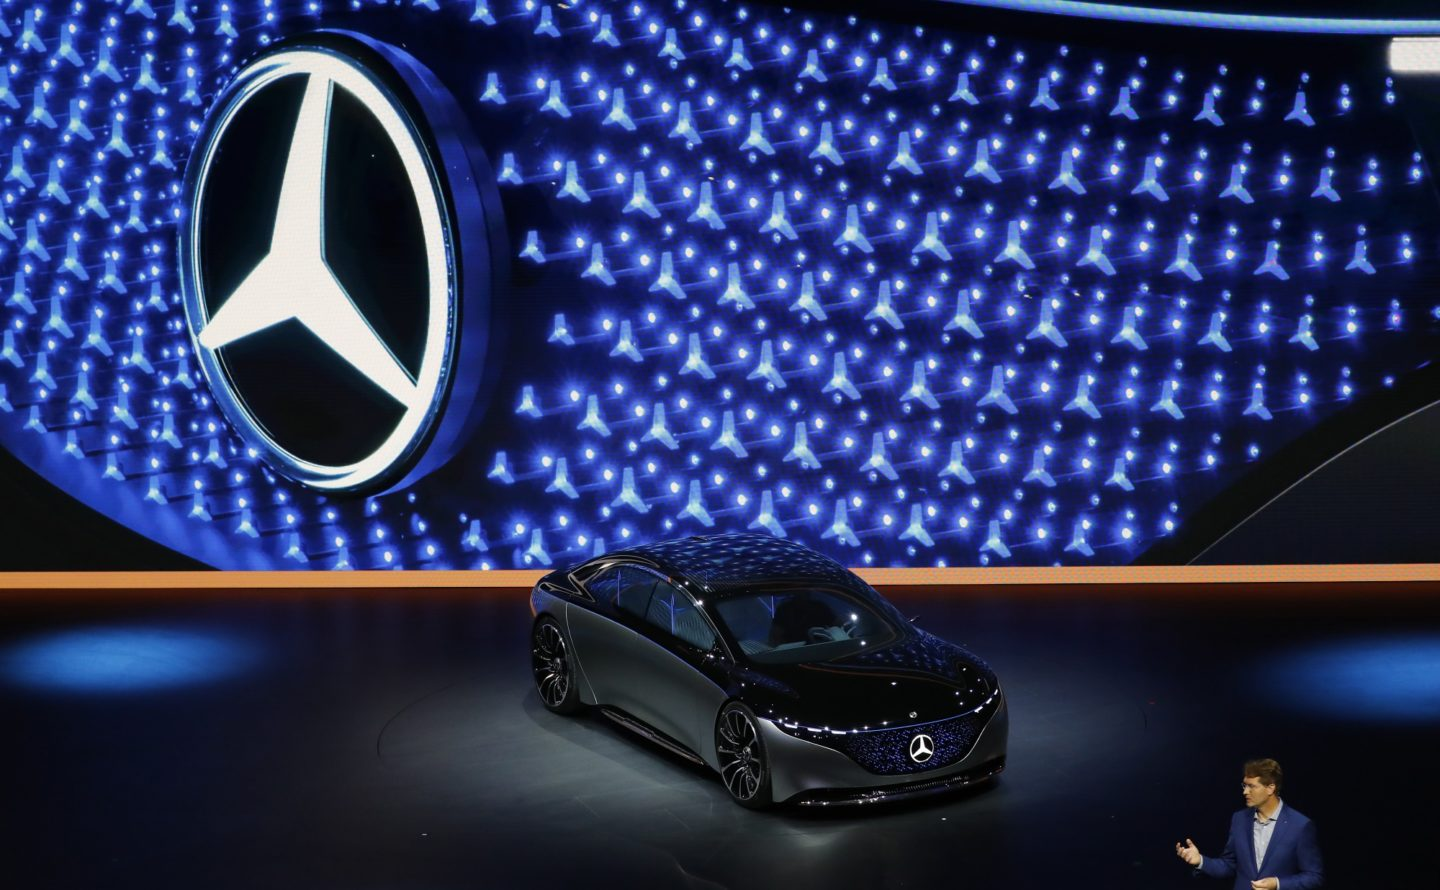 Mercedes-Benz Vision EQS electric automobile at the IAA Frankfurt Motor Show